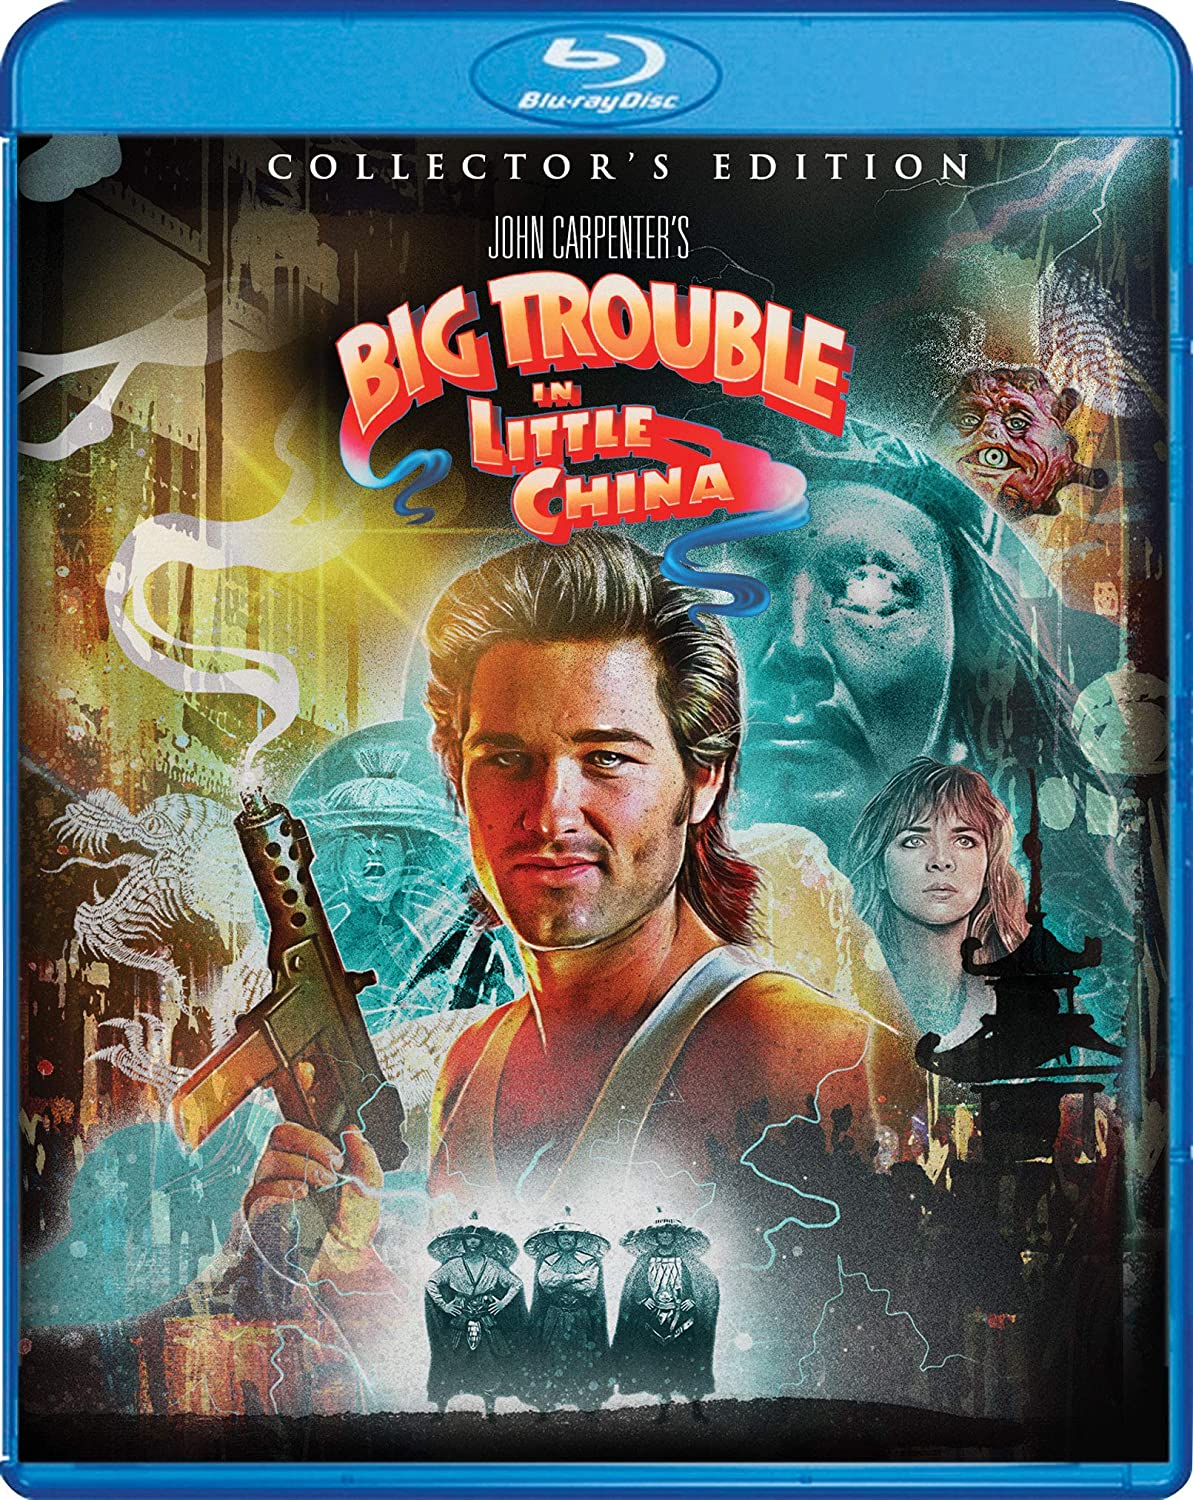 Big Trouble in Little China Collector's Edition [Blu-ray]